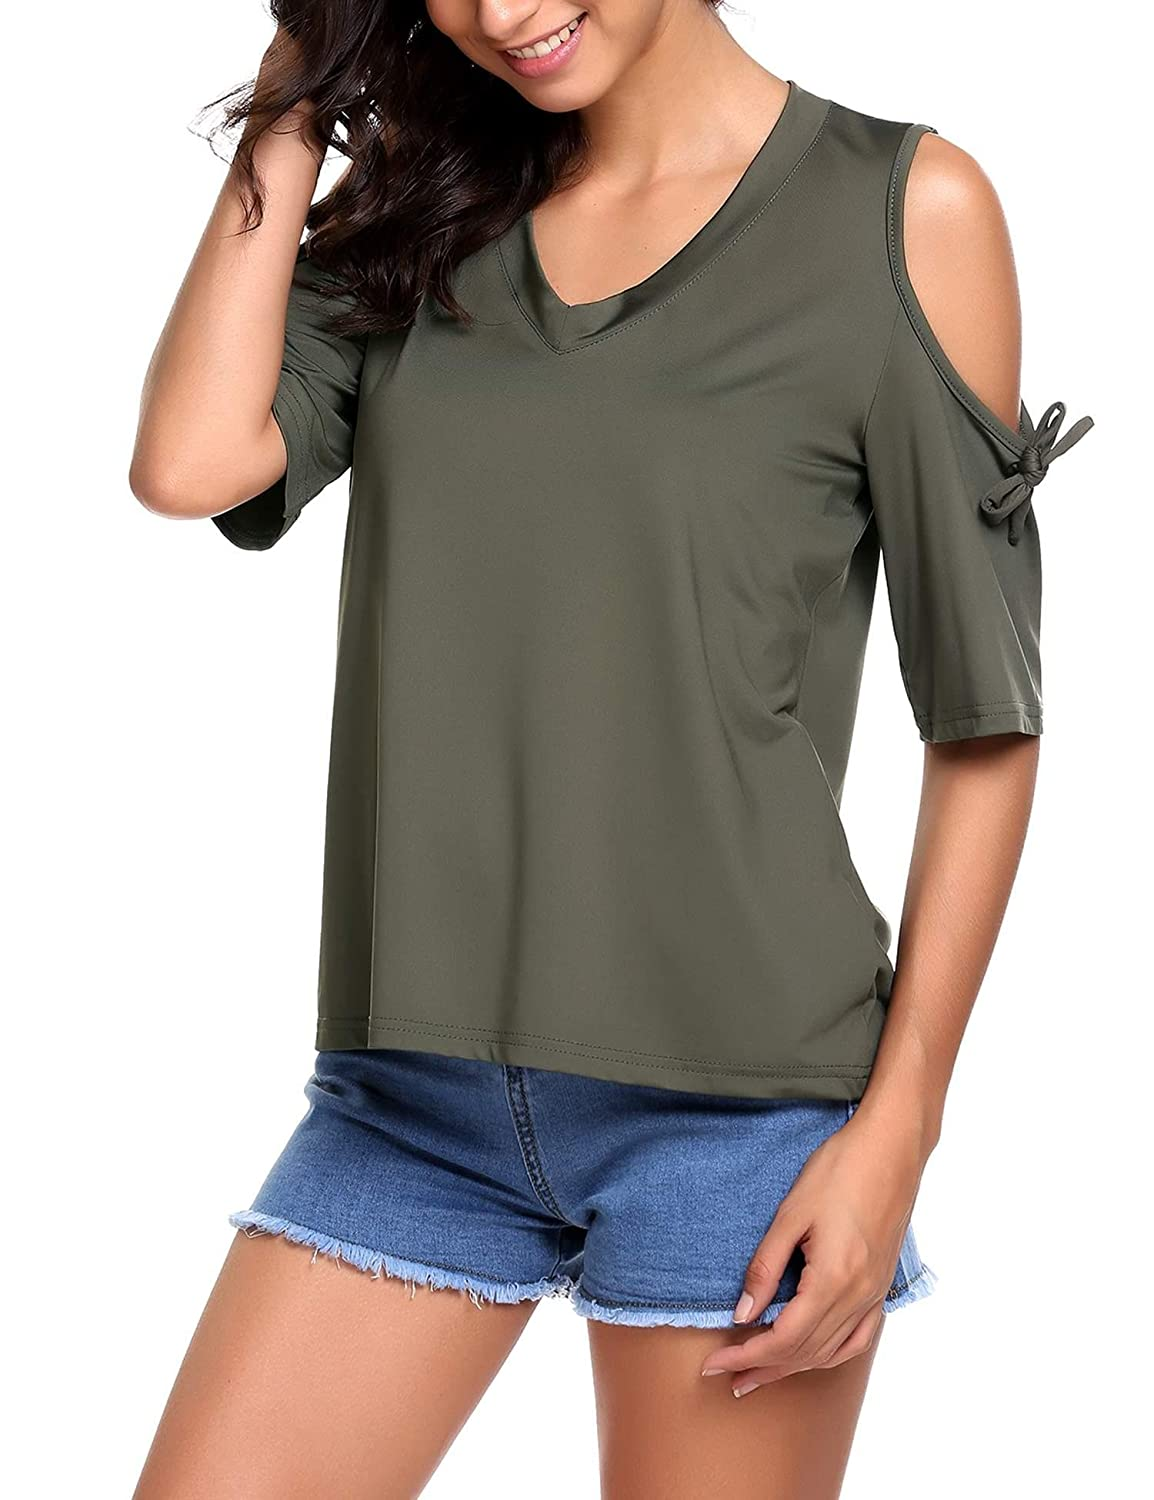 BeautyUU Women Loose Casual V-Neck Short Sleeve Cut Out Shoulder Top Pullover T-Shirt